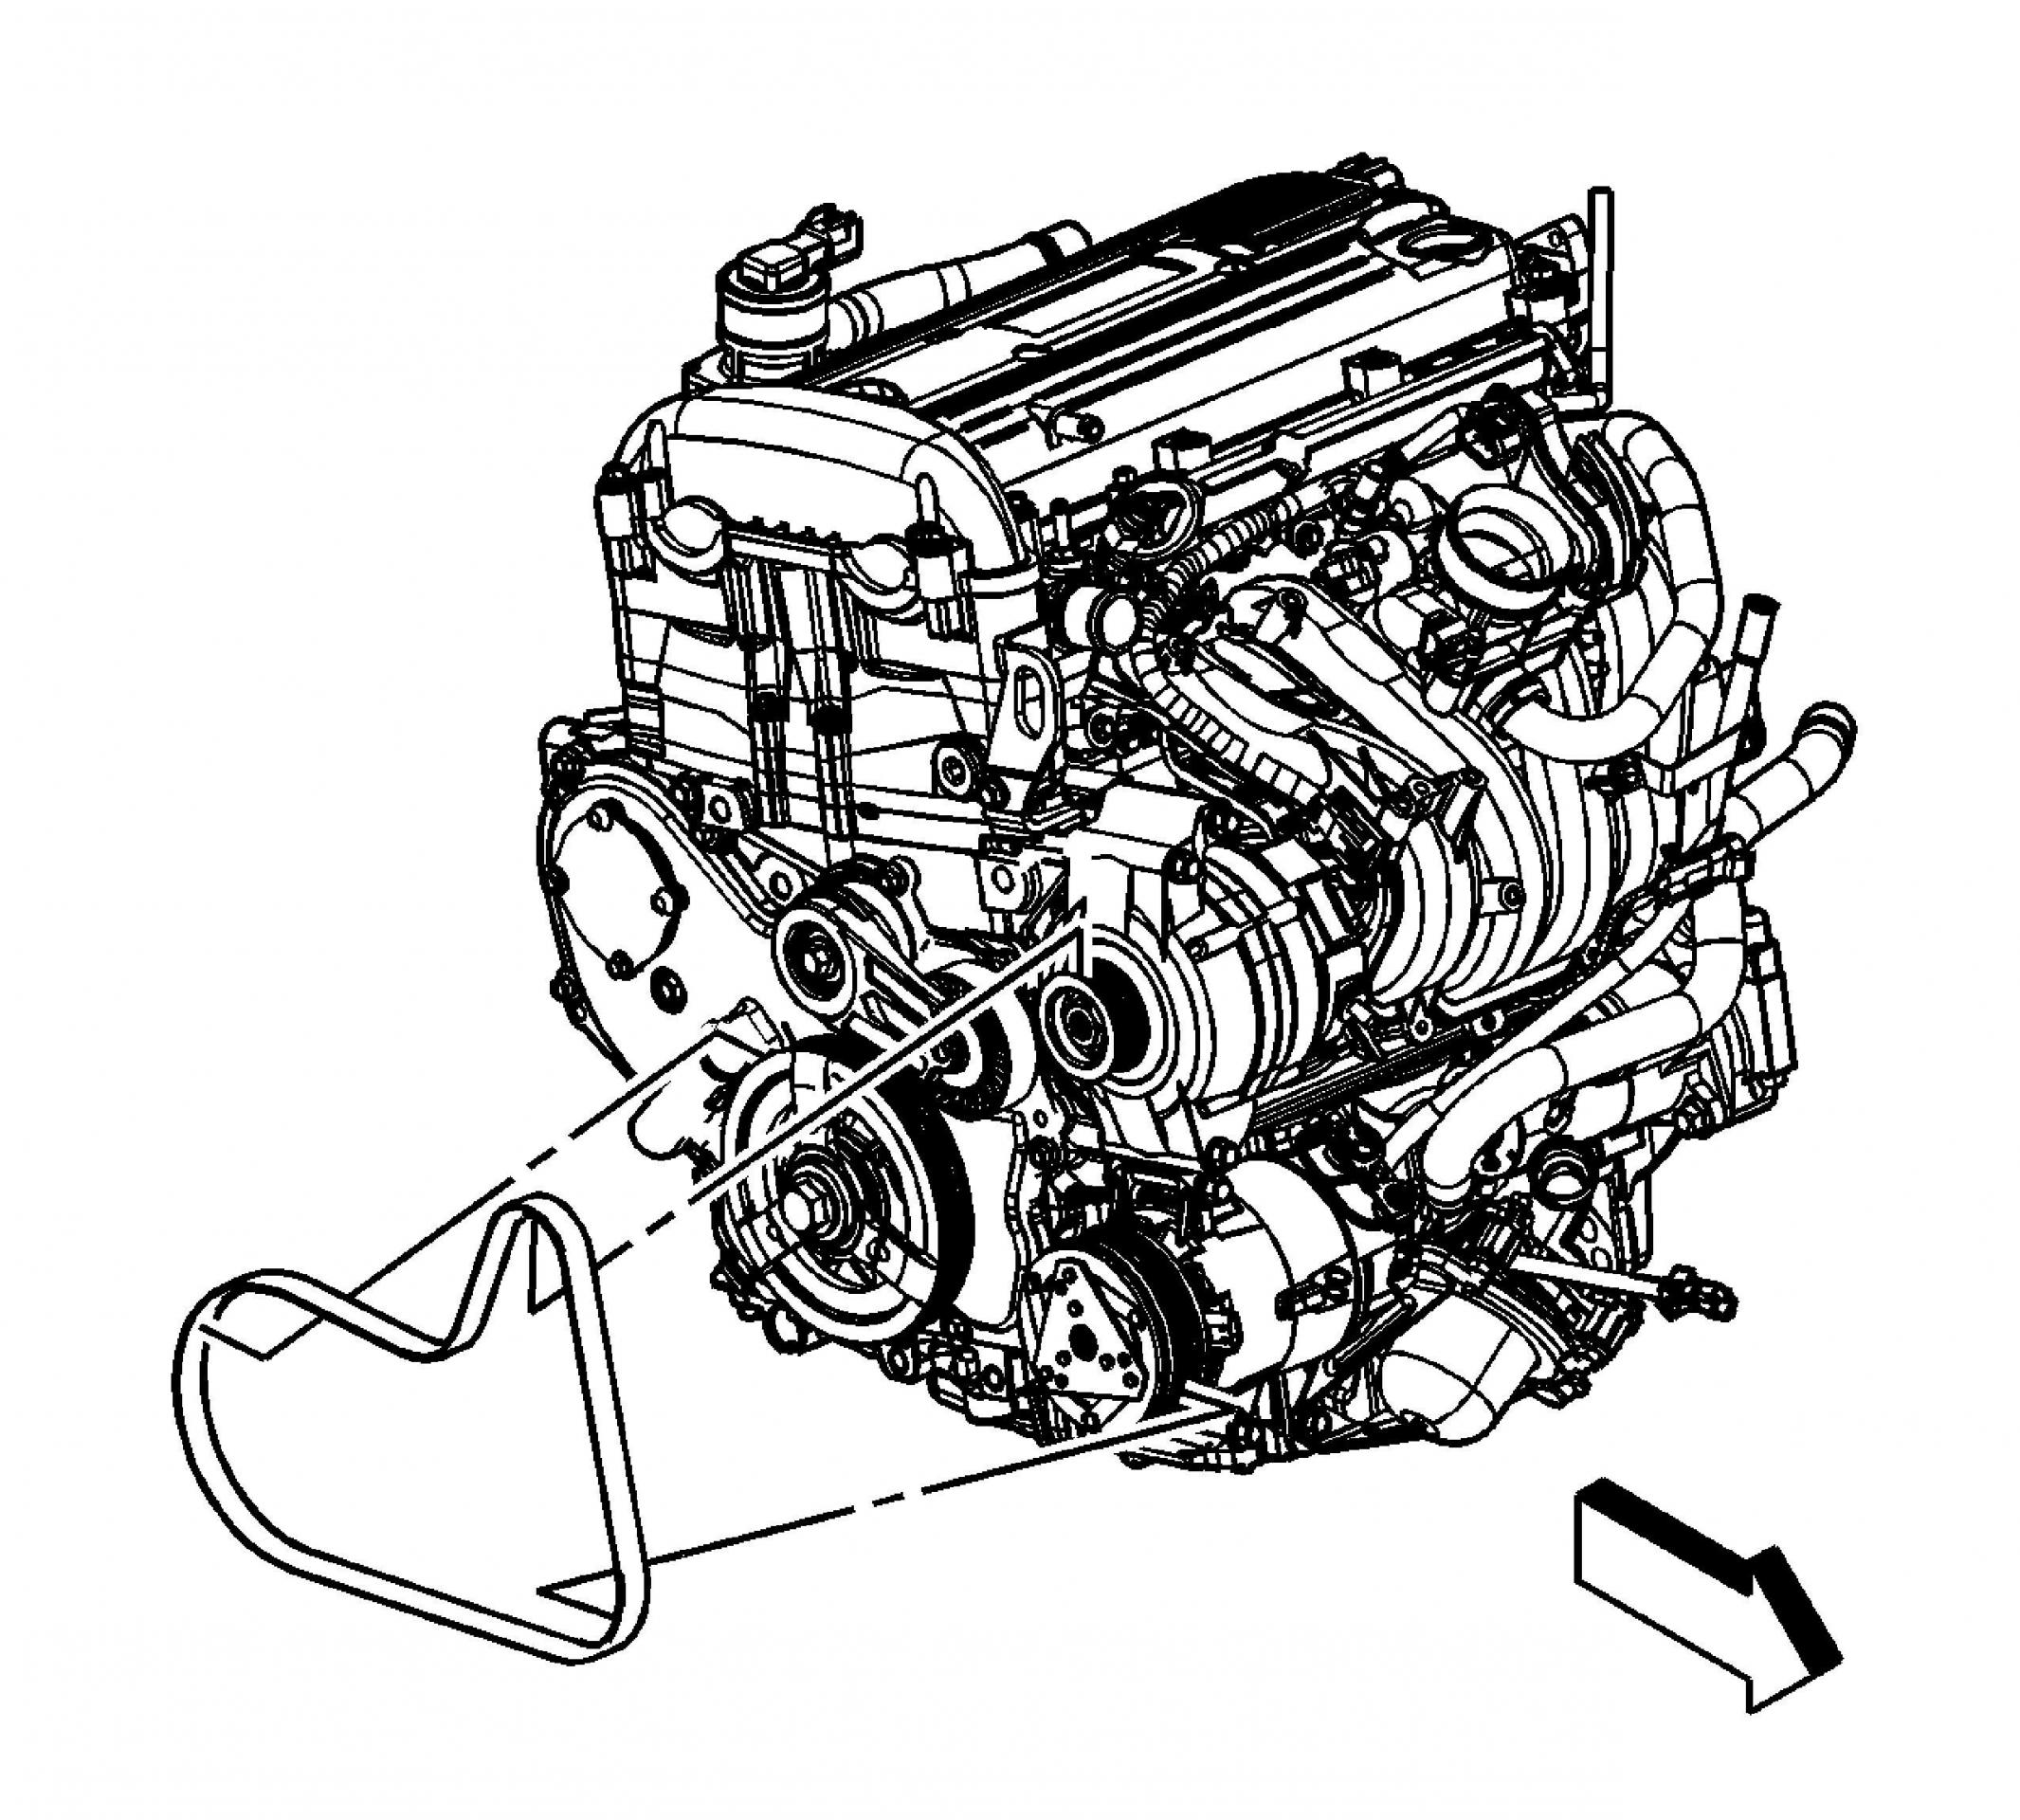 05 Chevy Equinox Engine Part Diagrams